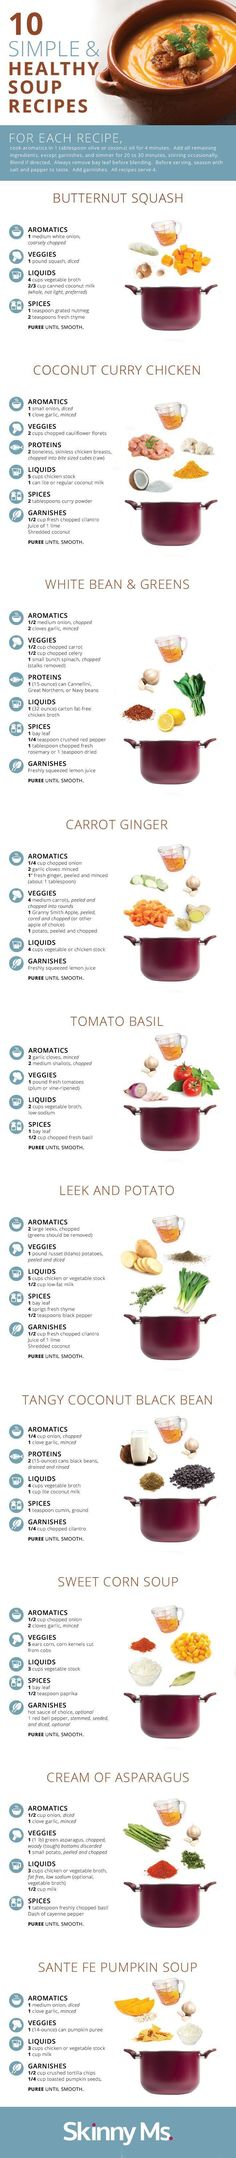 Simple and Healthy Soup Recipes 10 Simple and Healthy Soup Recipes. Souper Simple and Healthy Soup Recipes. Ways To Eat Healthy, Healthy Eating, Healthy Food, Healthy Detox, Healthy Lunches, Healthy Soup Recipes, Cooking Recipes, Curry Recipes, Vegetarian Recipes